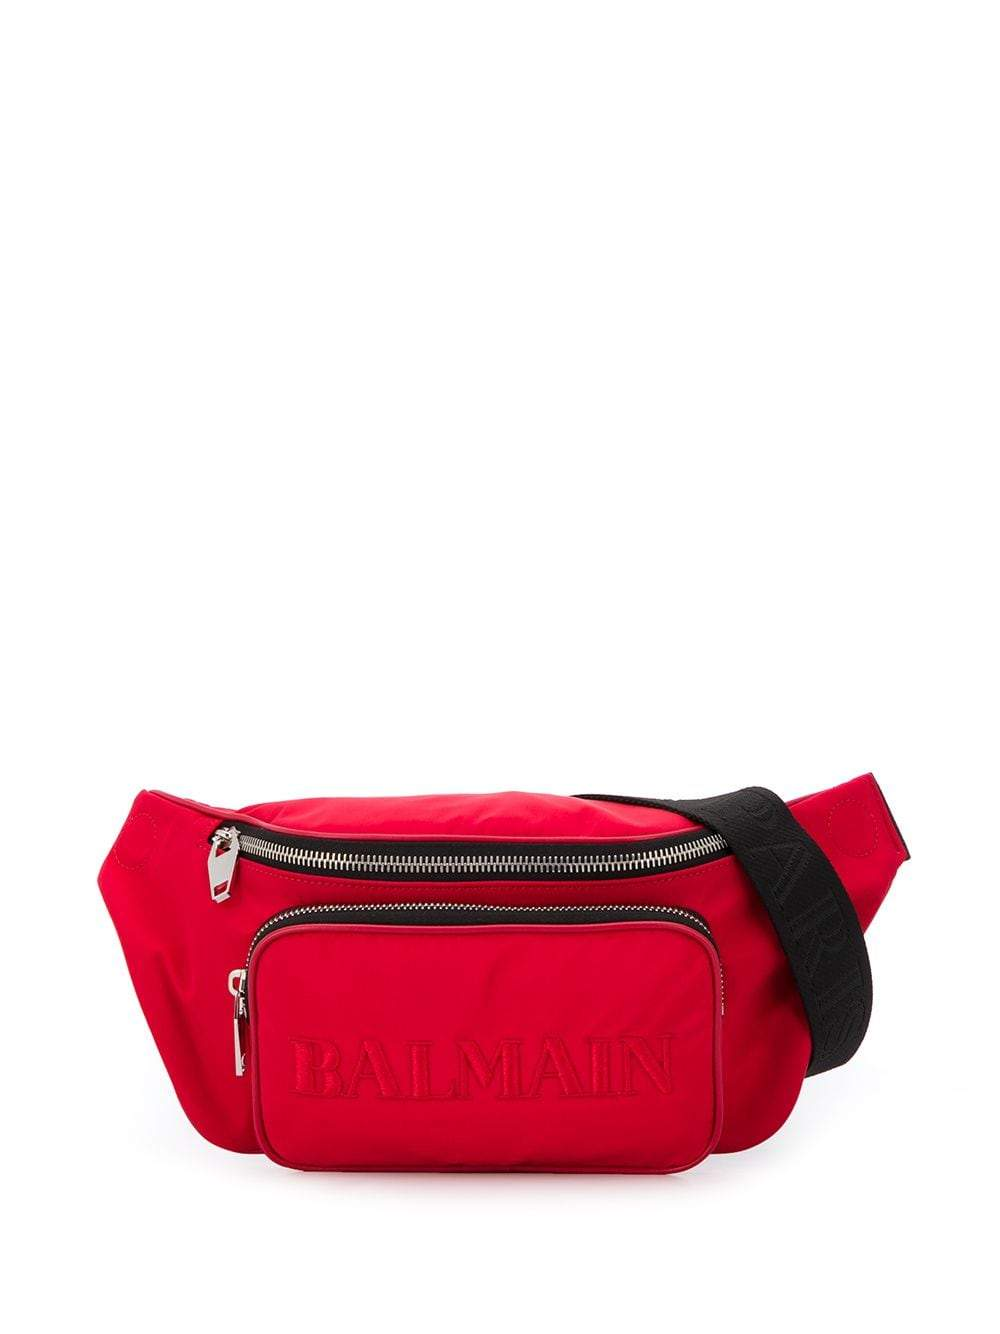 BALMAIN Embroidered Logo Crossbody Bag